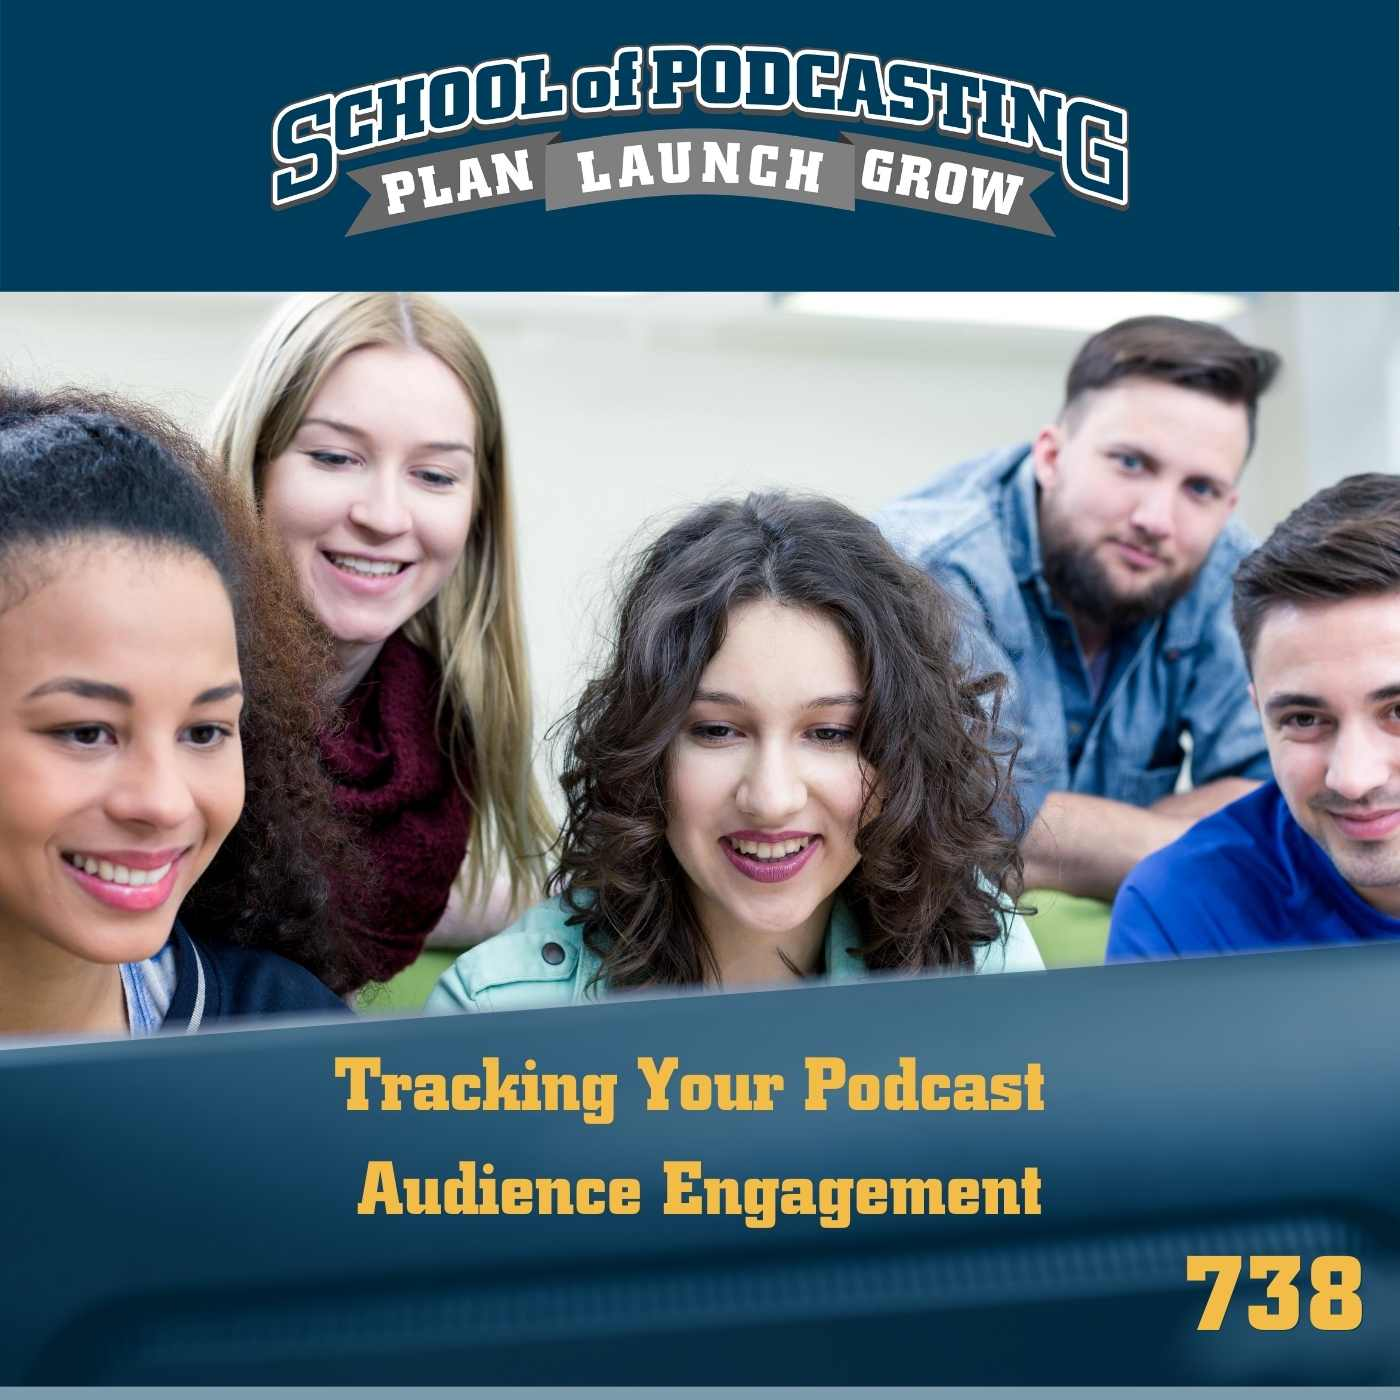 How To Measure Your Podcast Audience Engagement